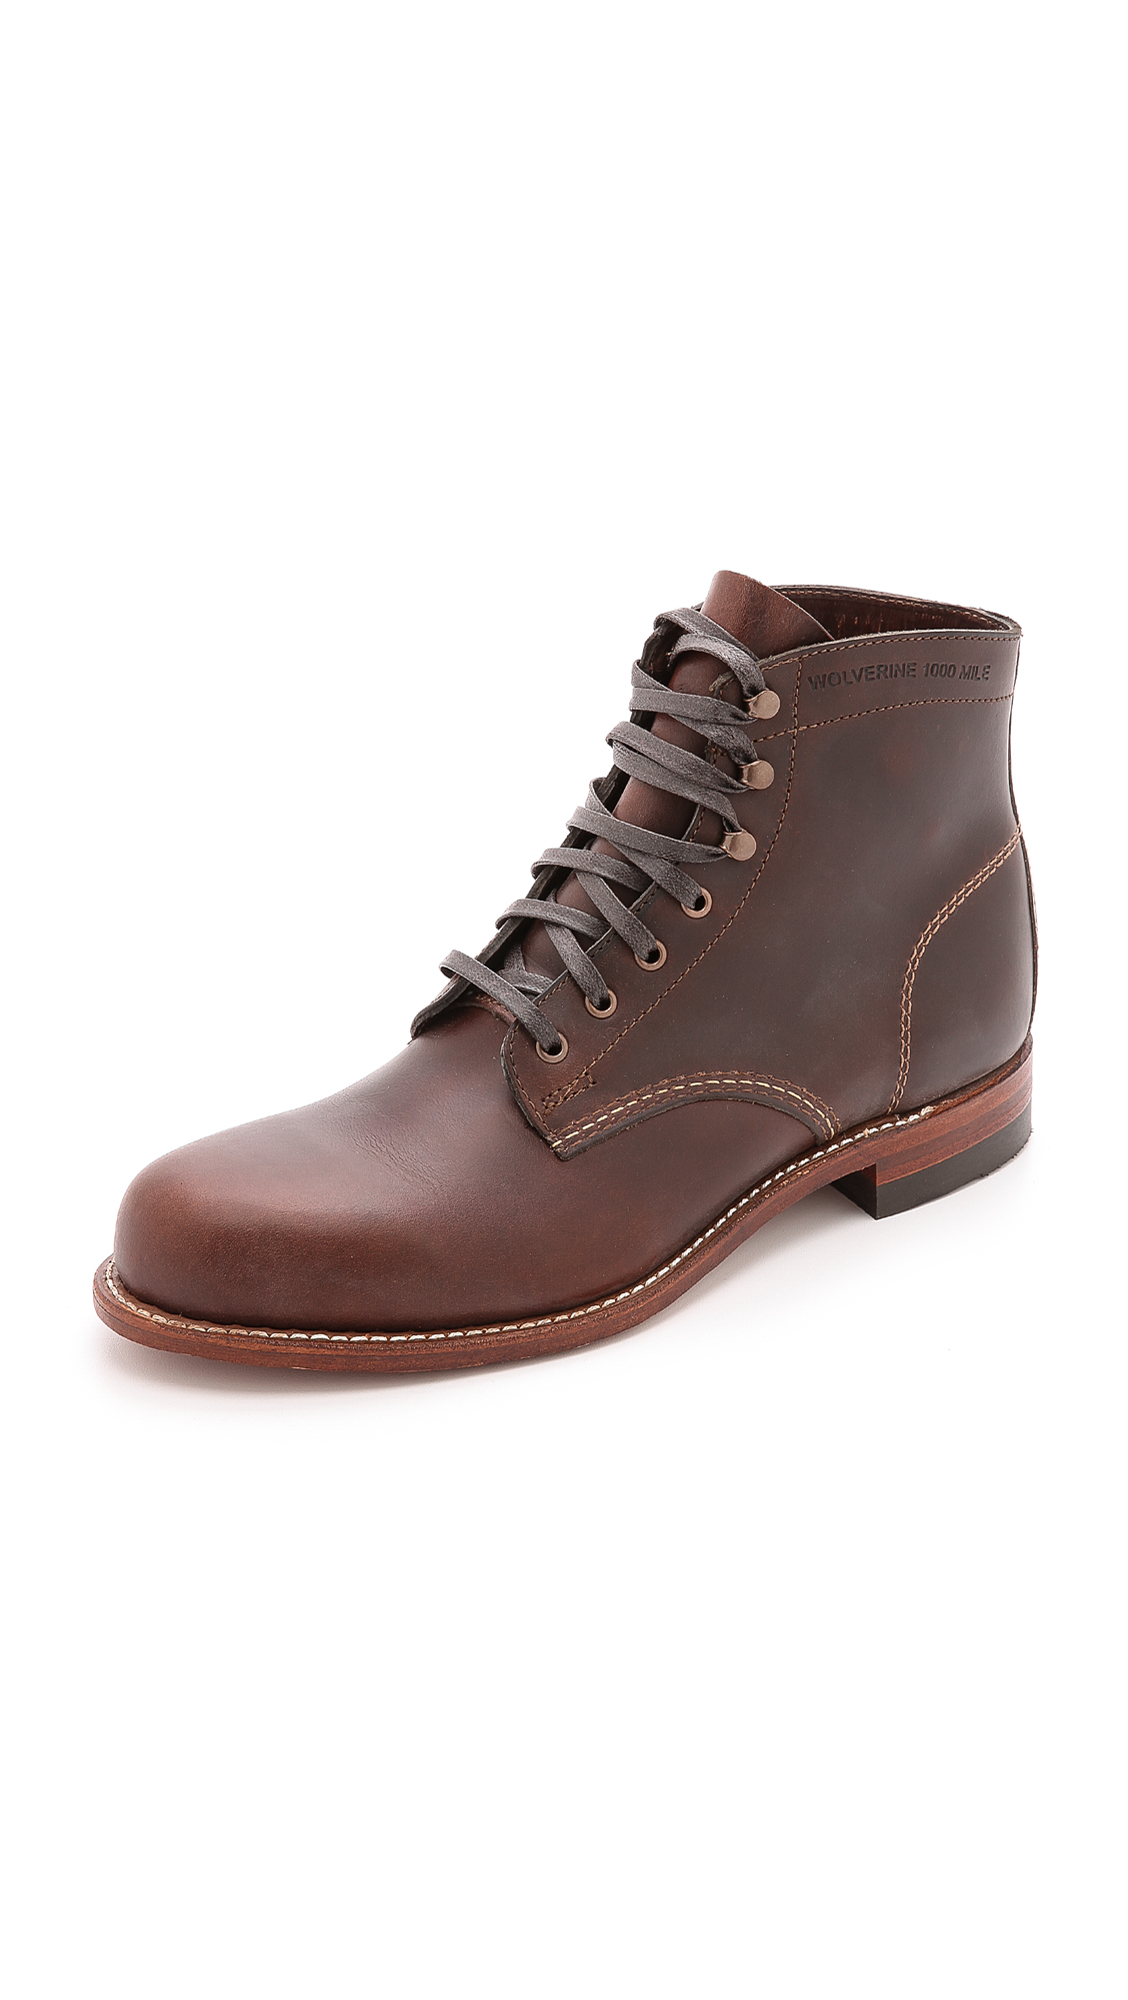 57407ccac35 Daftar Harga 1000 About Shoes Boots On Termurah 2018 $ Www ...